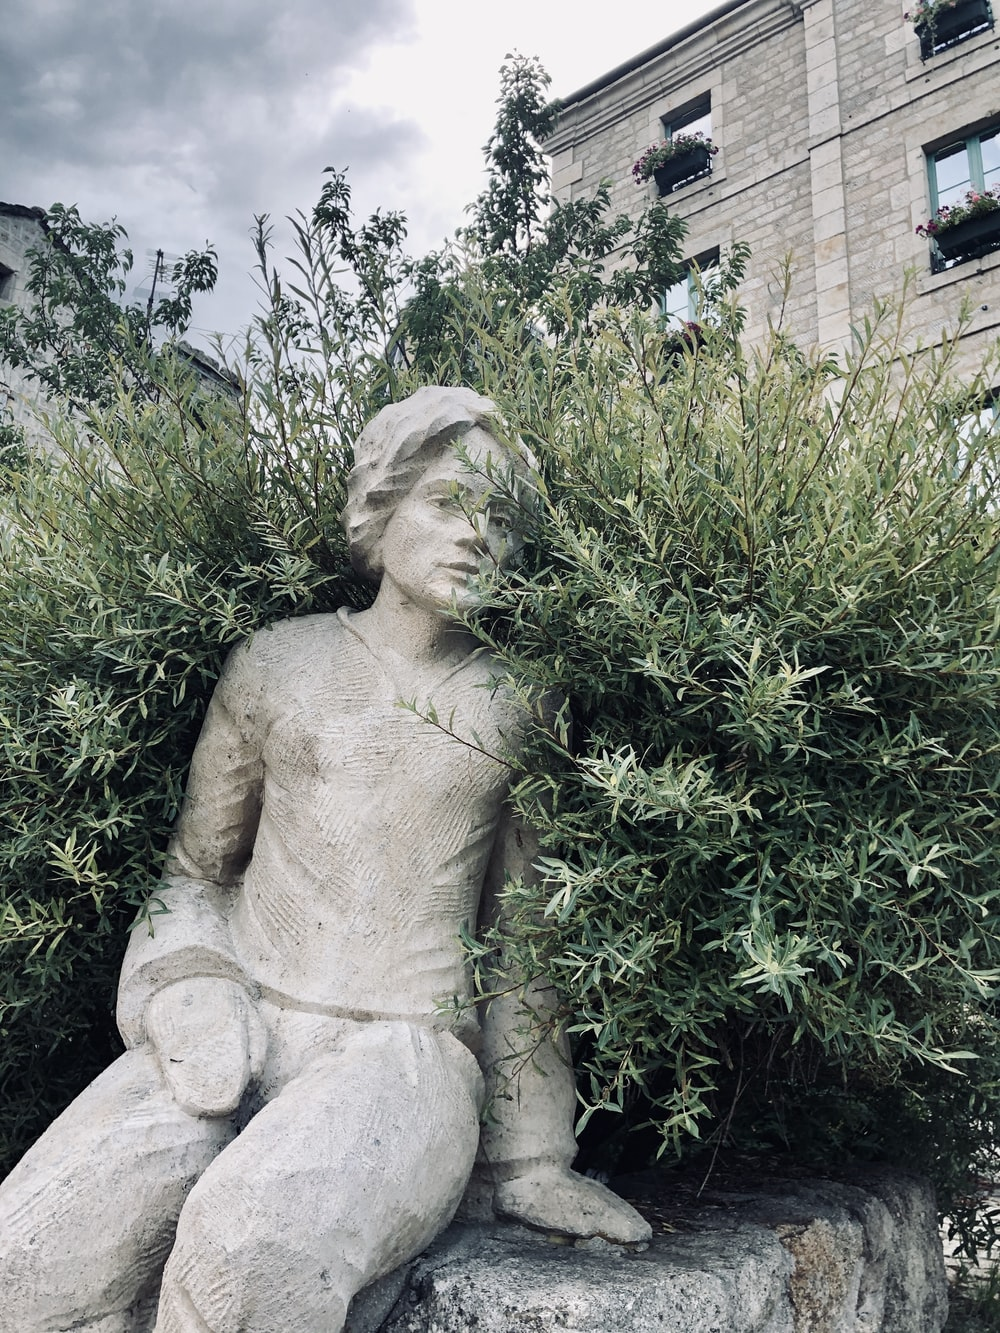 woman statue near green plants during daytime